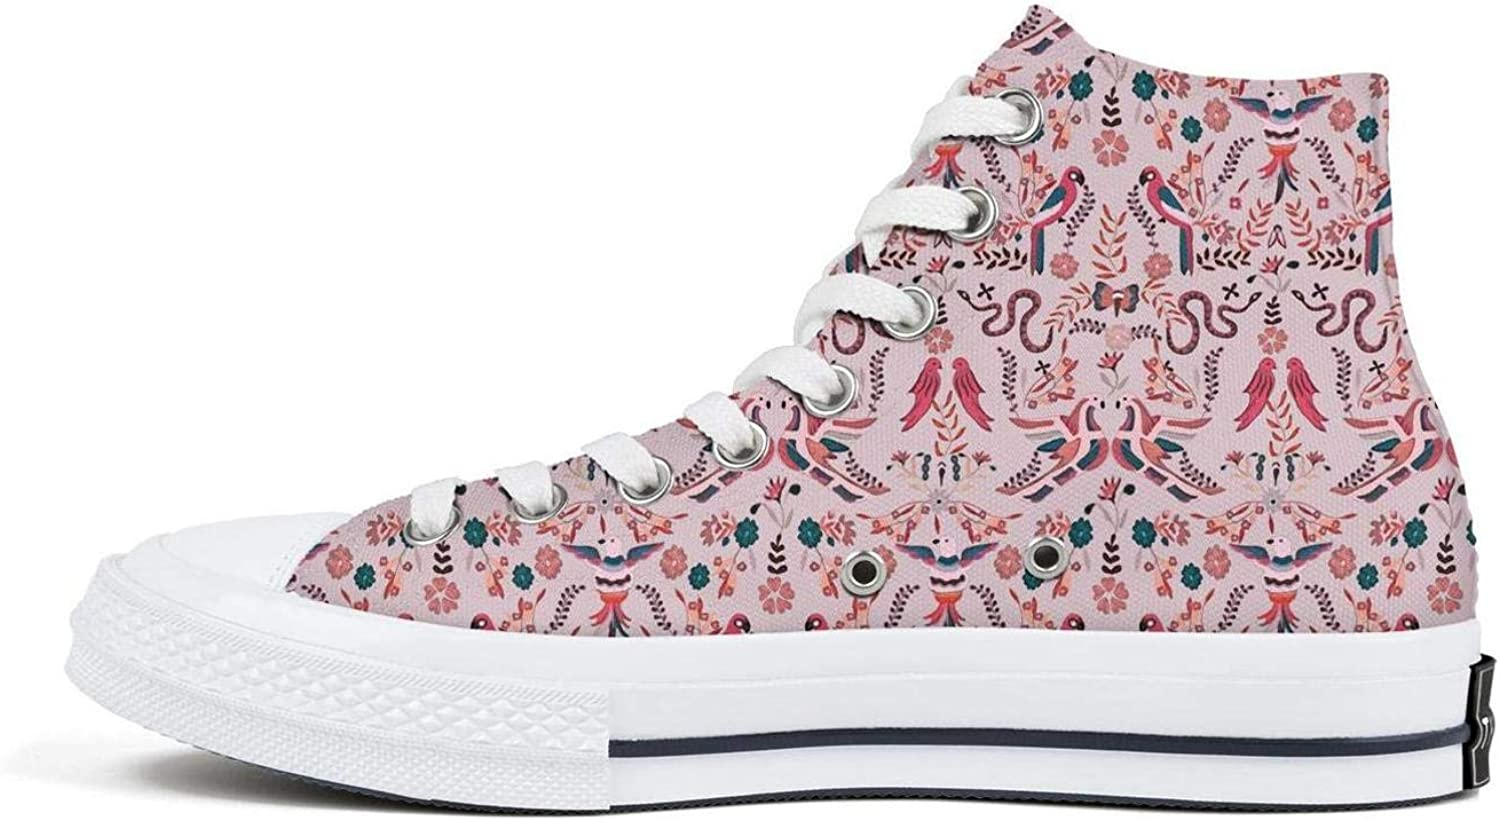 Womens Cute Floral Pattern Canvas High Top Lace-up Classic Casual Shoes Vintage Sneaker